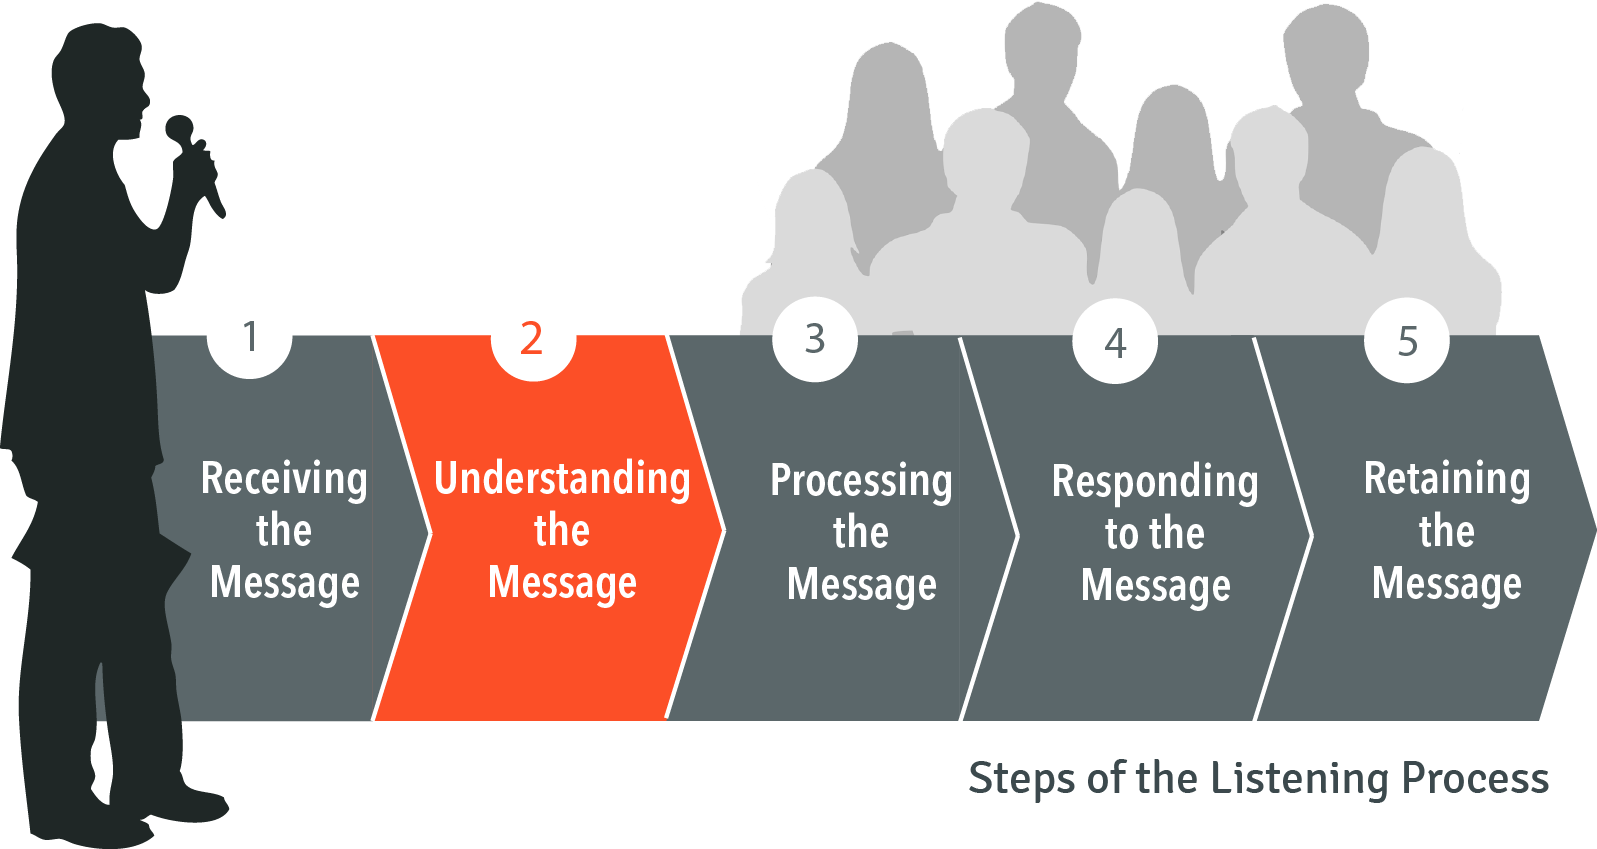 Steps of the listening process: 2. Understanding the message